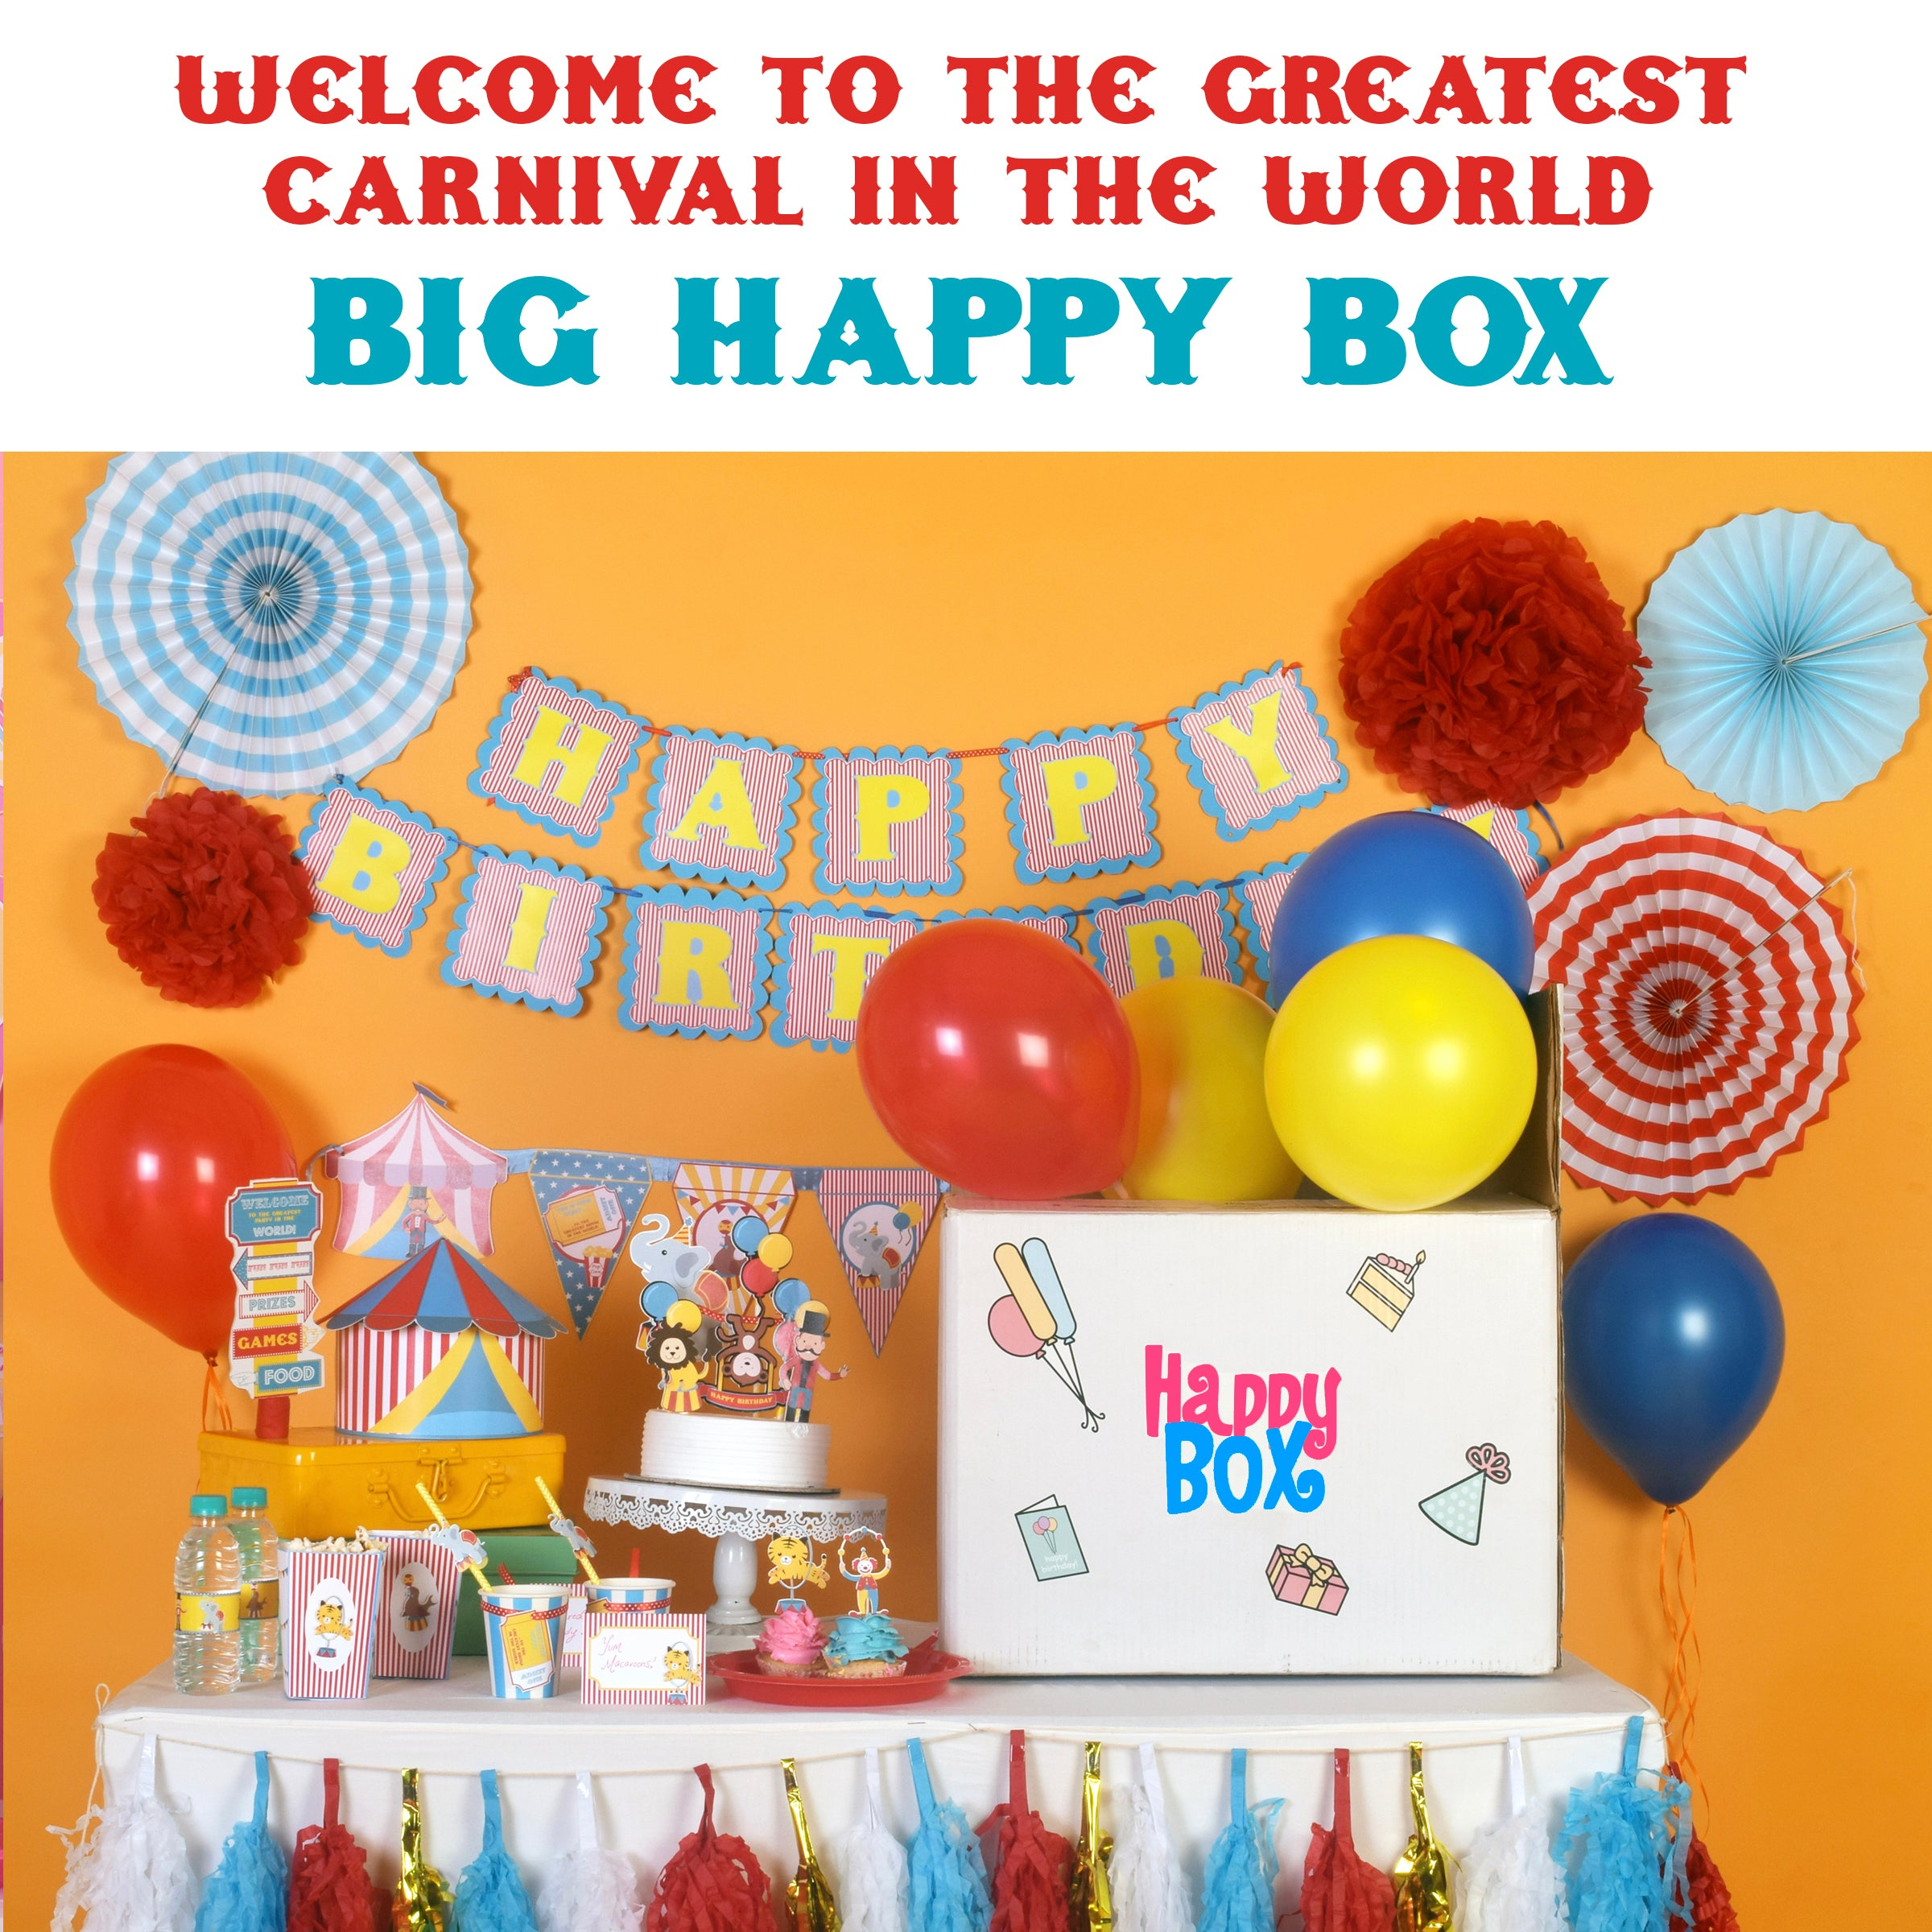 Welcome To The Greatest Carnival In The World Big Happy Box